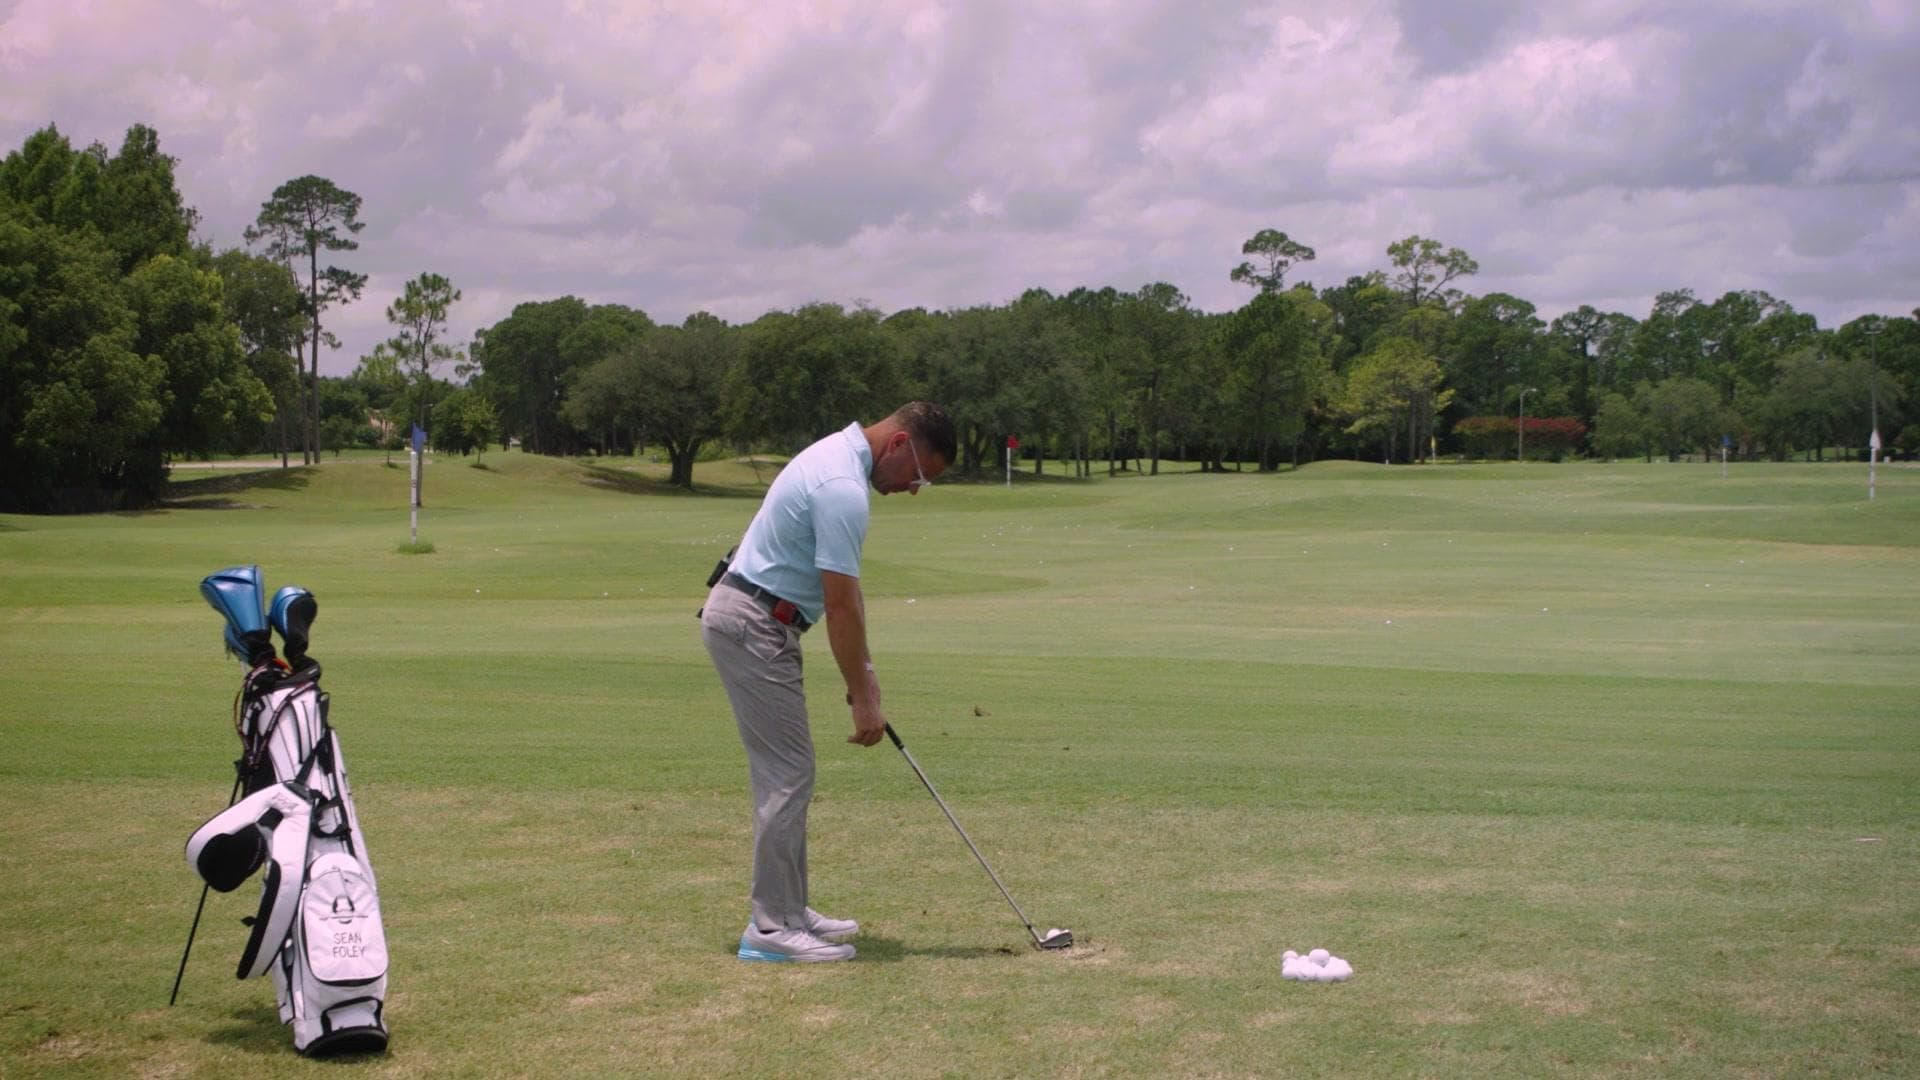 how far should you stand from your golf ball